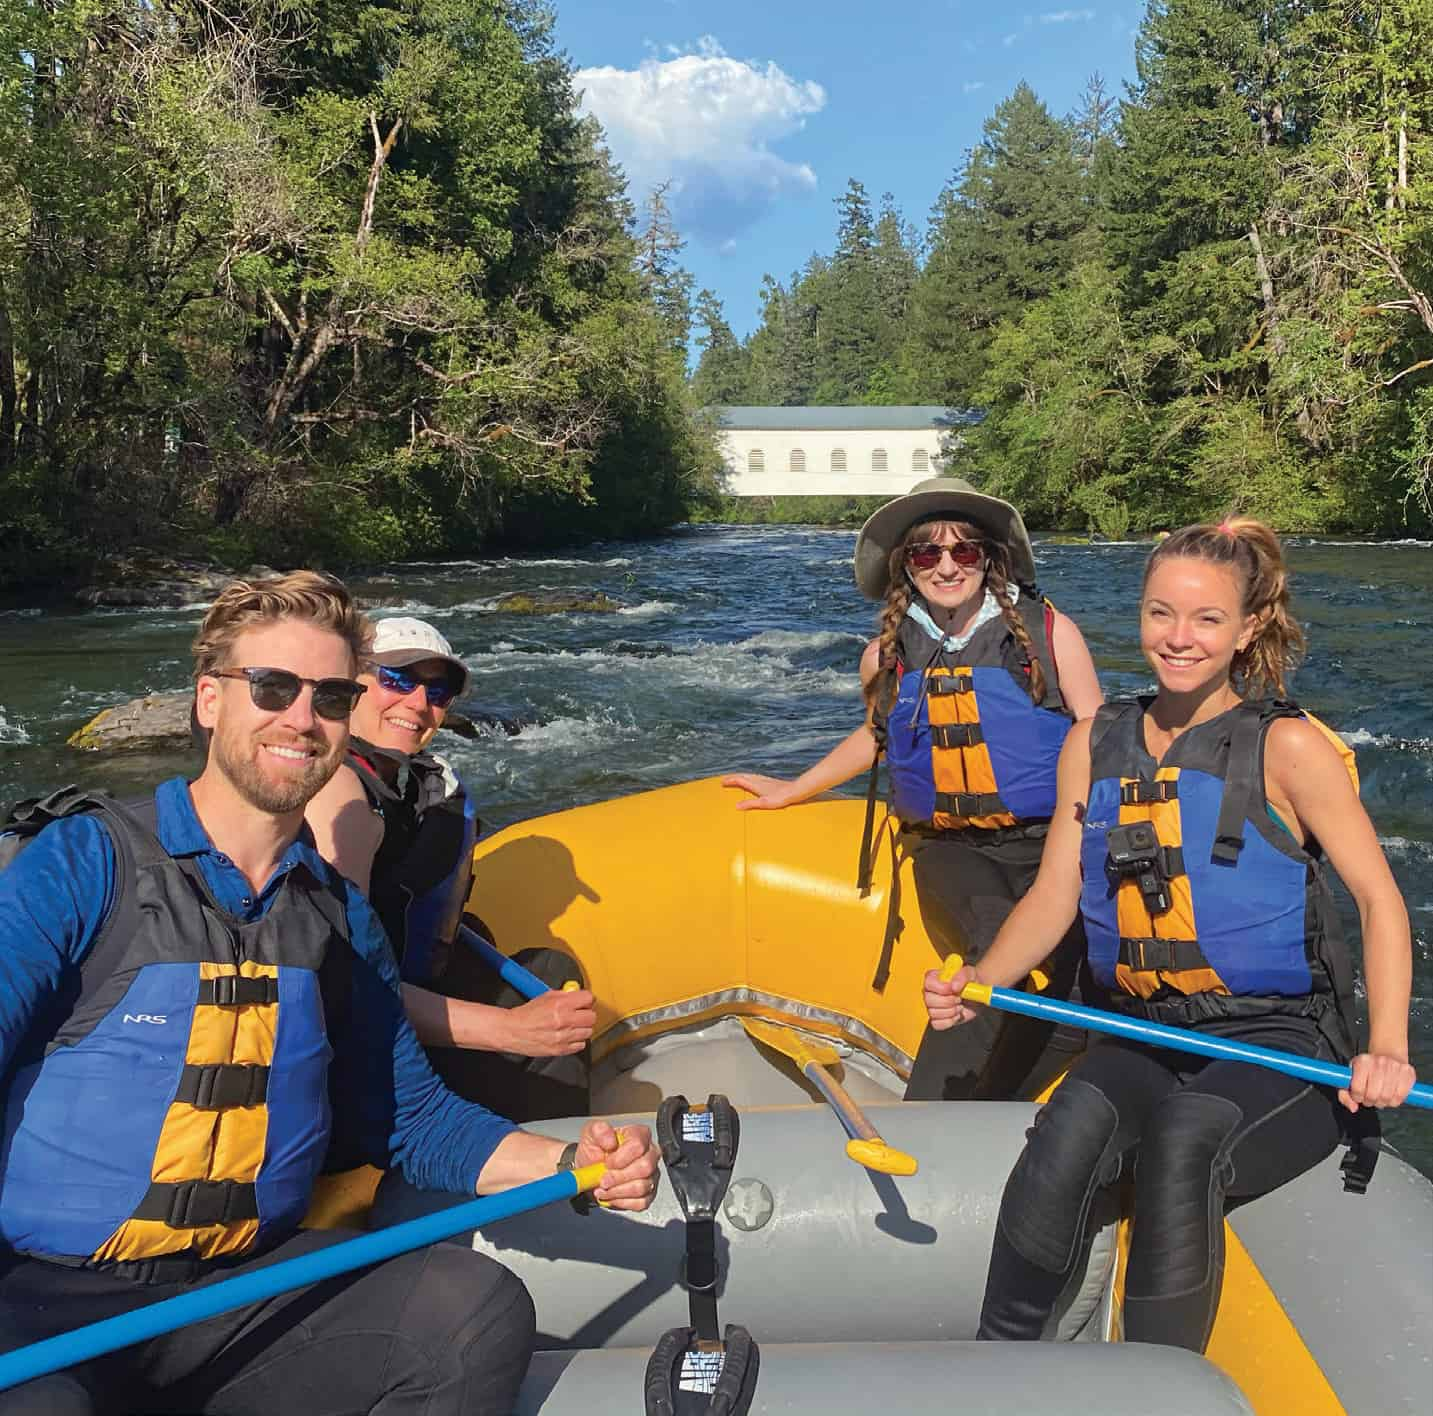 Rafting the McKenzie River is a cool reward after a day of working with volunteering vacationers.